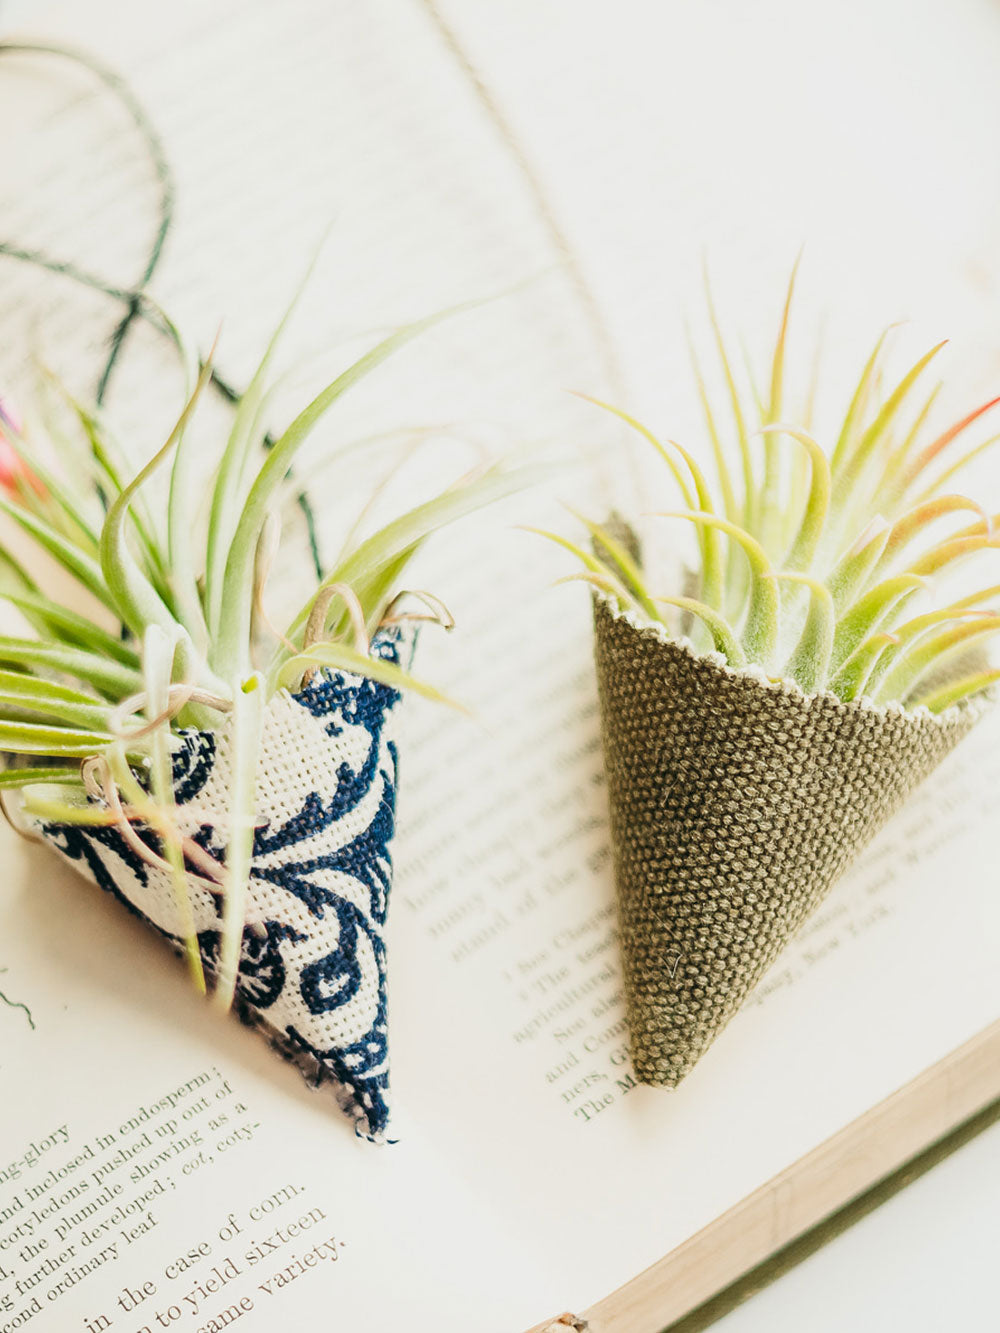 Two air plants sit in fabric cone shaped air plant holders. They are sitting on an open book. One plant holder is a blue and white print, the other a sage green canvas.